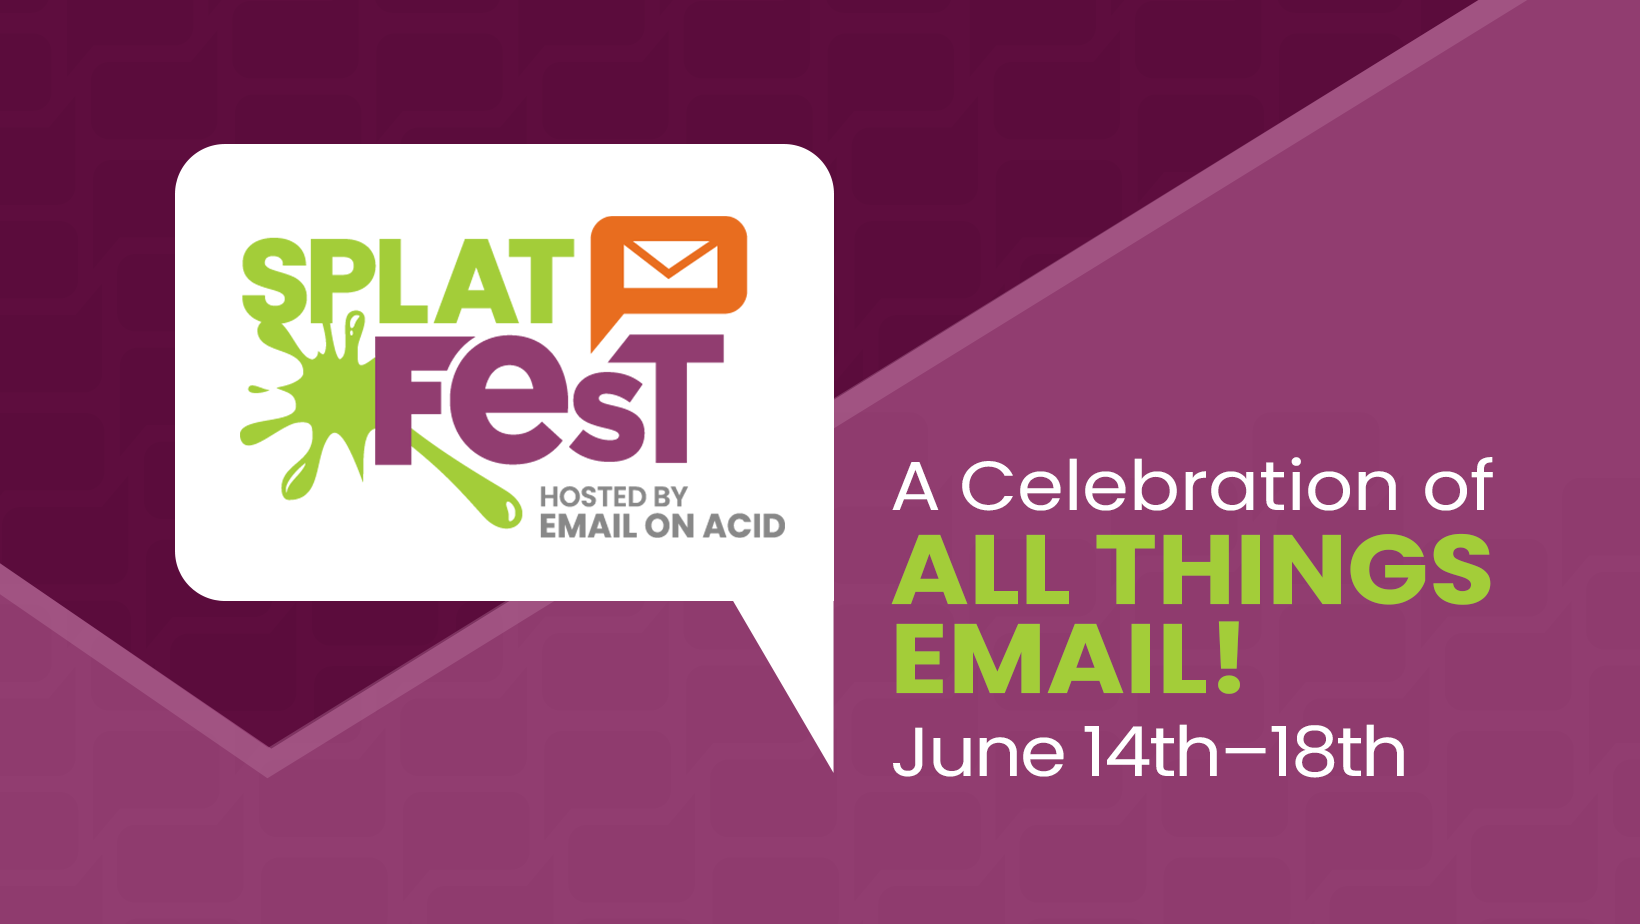 splat fest logo with dates  June 14 to 18